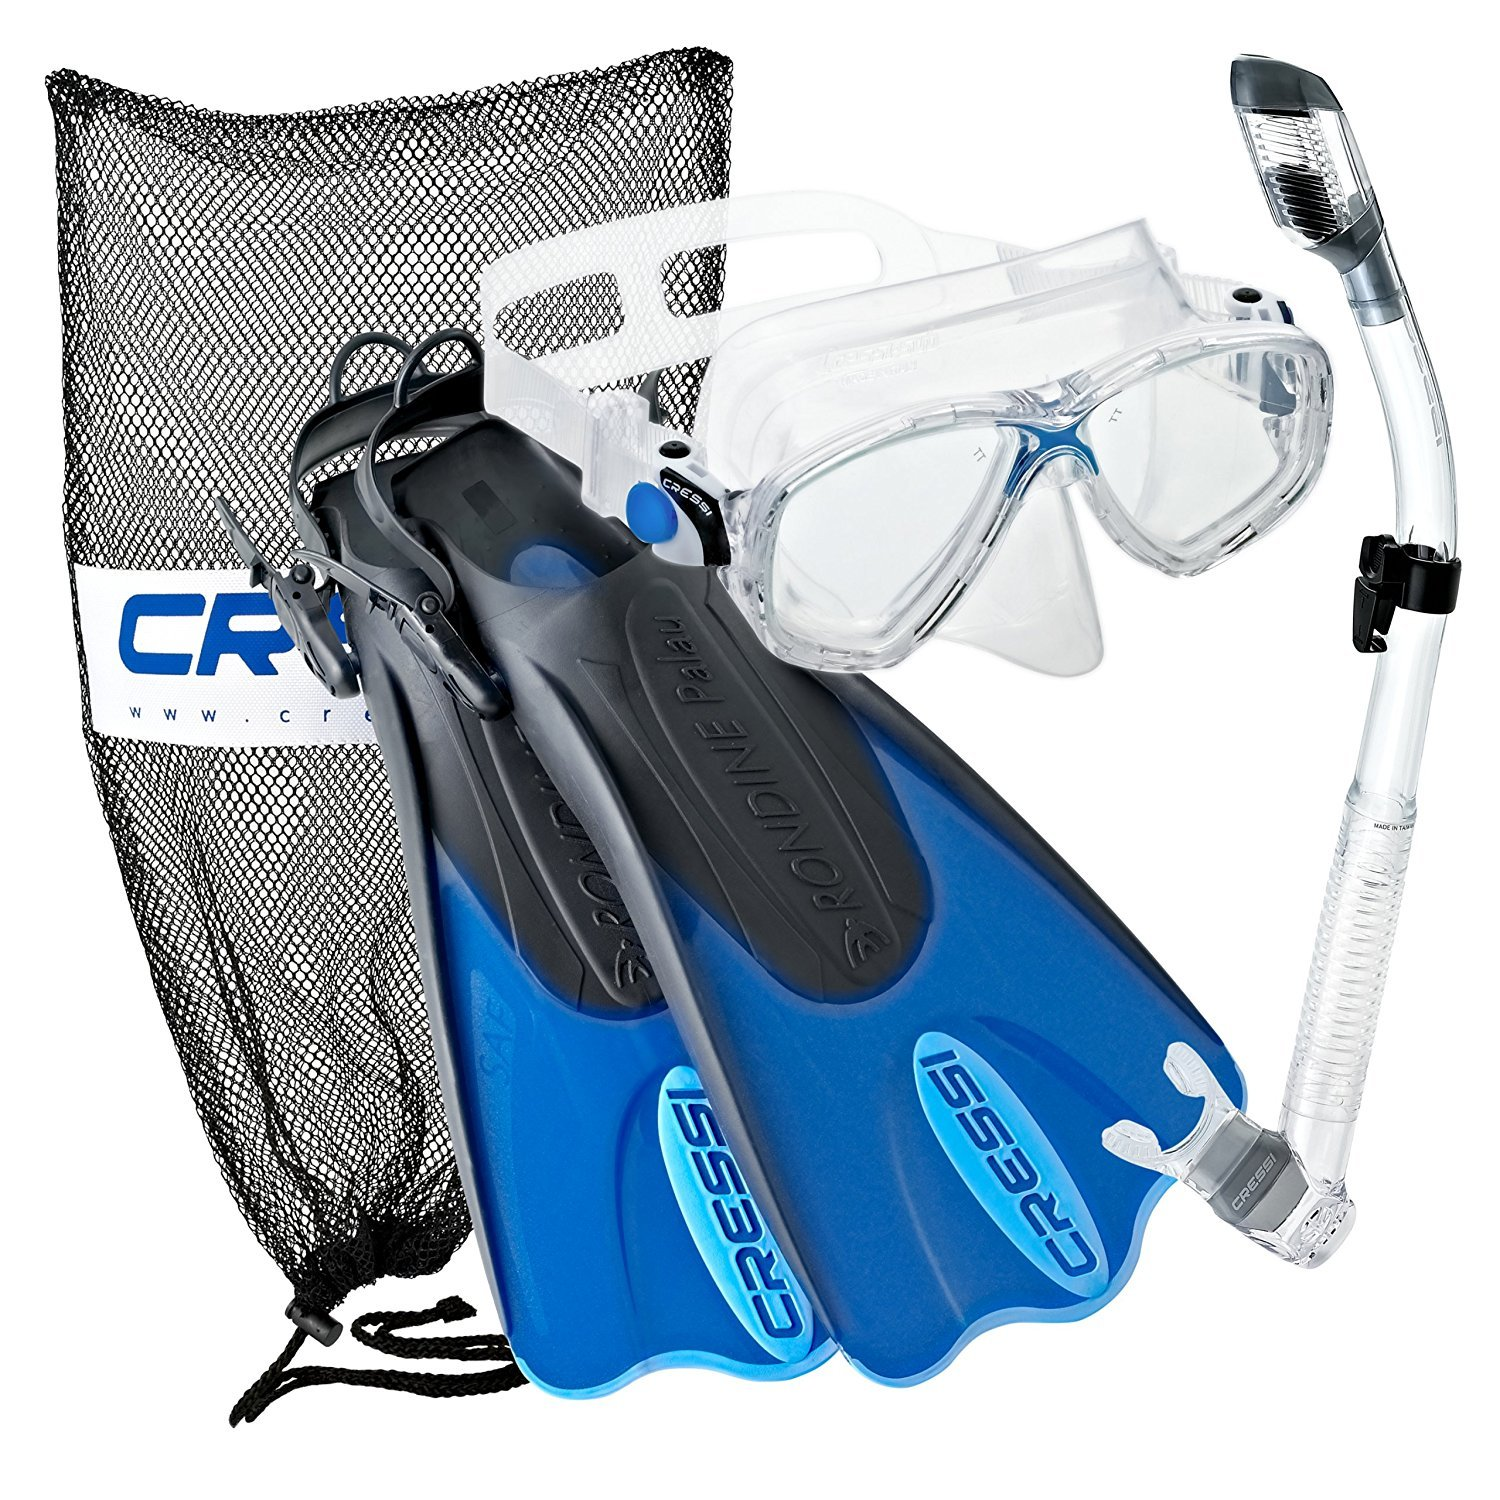 Cressi Palau Mask Fin Snorkel Set with Snorkeling Gear Bag, Blue, XS/S | (Men's 2-4) (Women's 3-5)